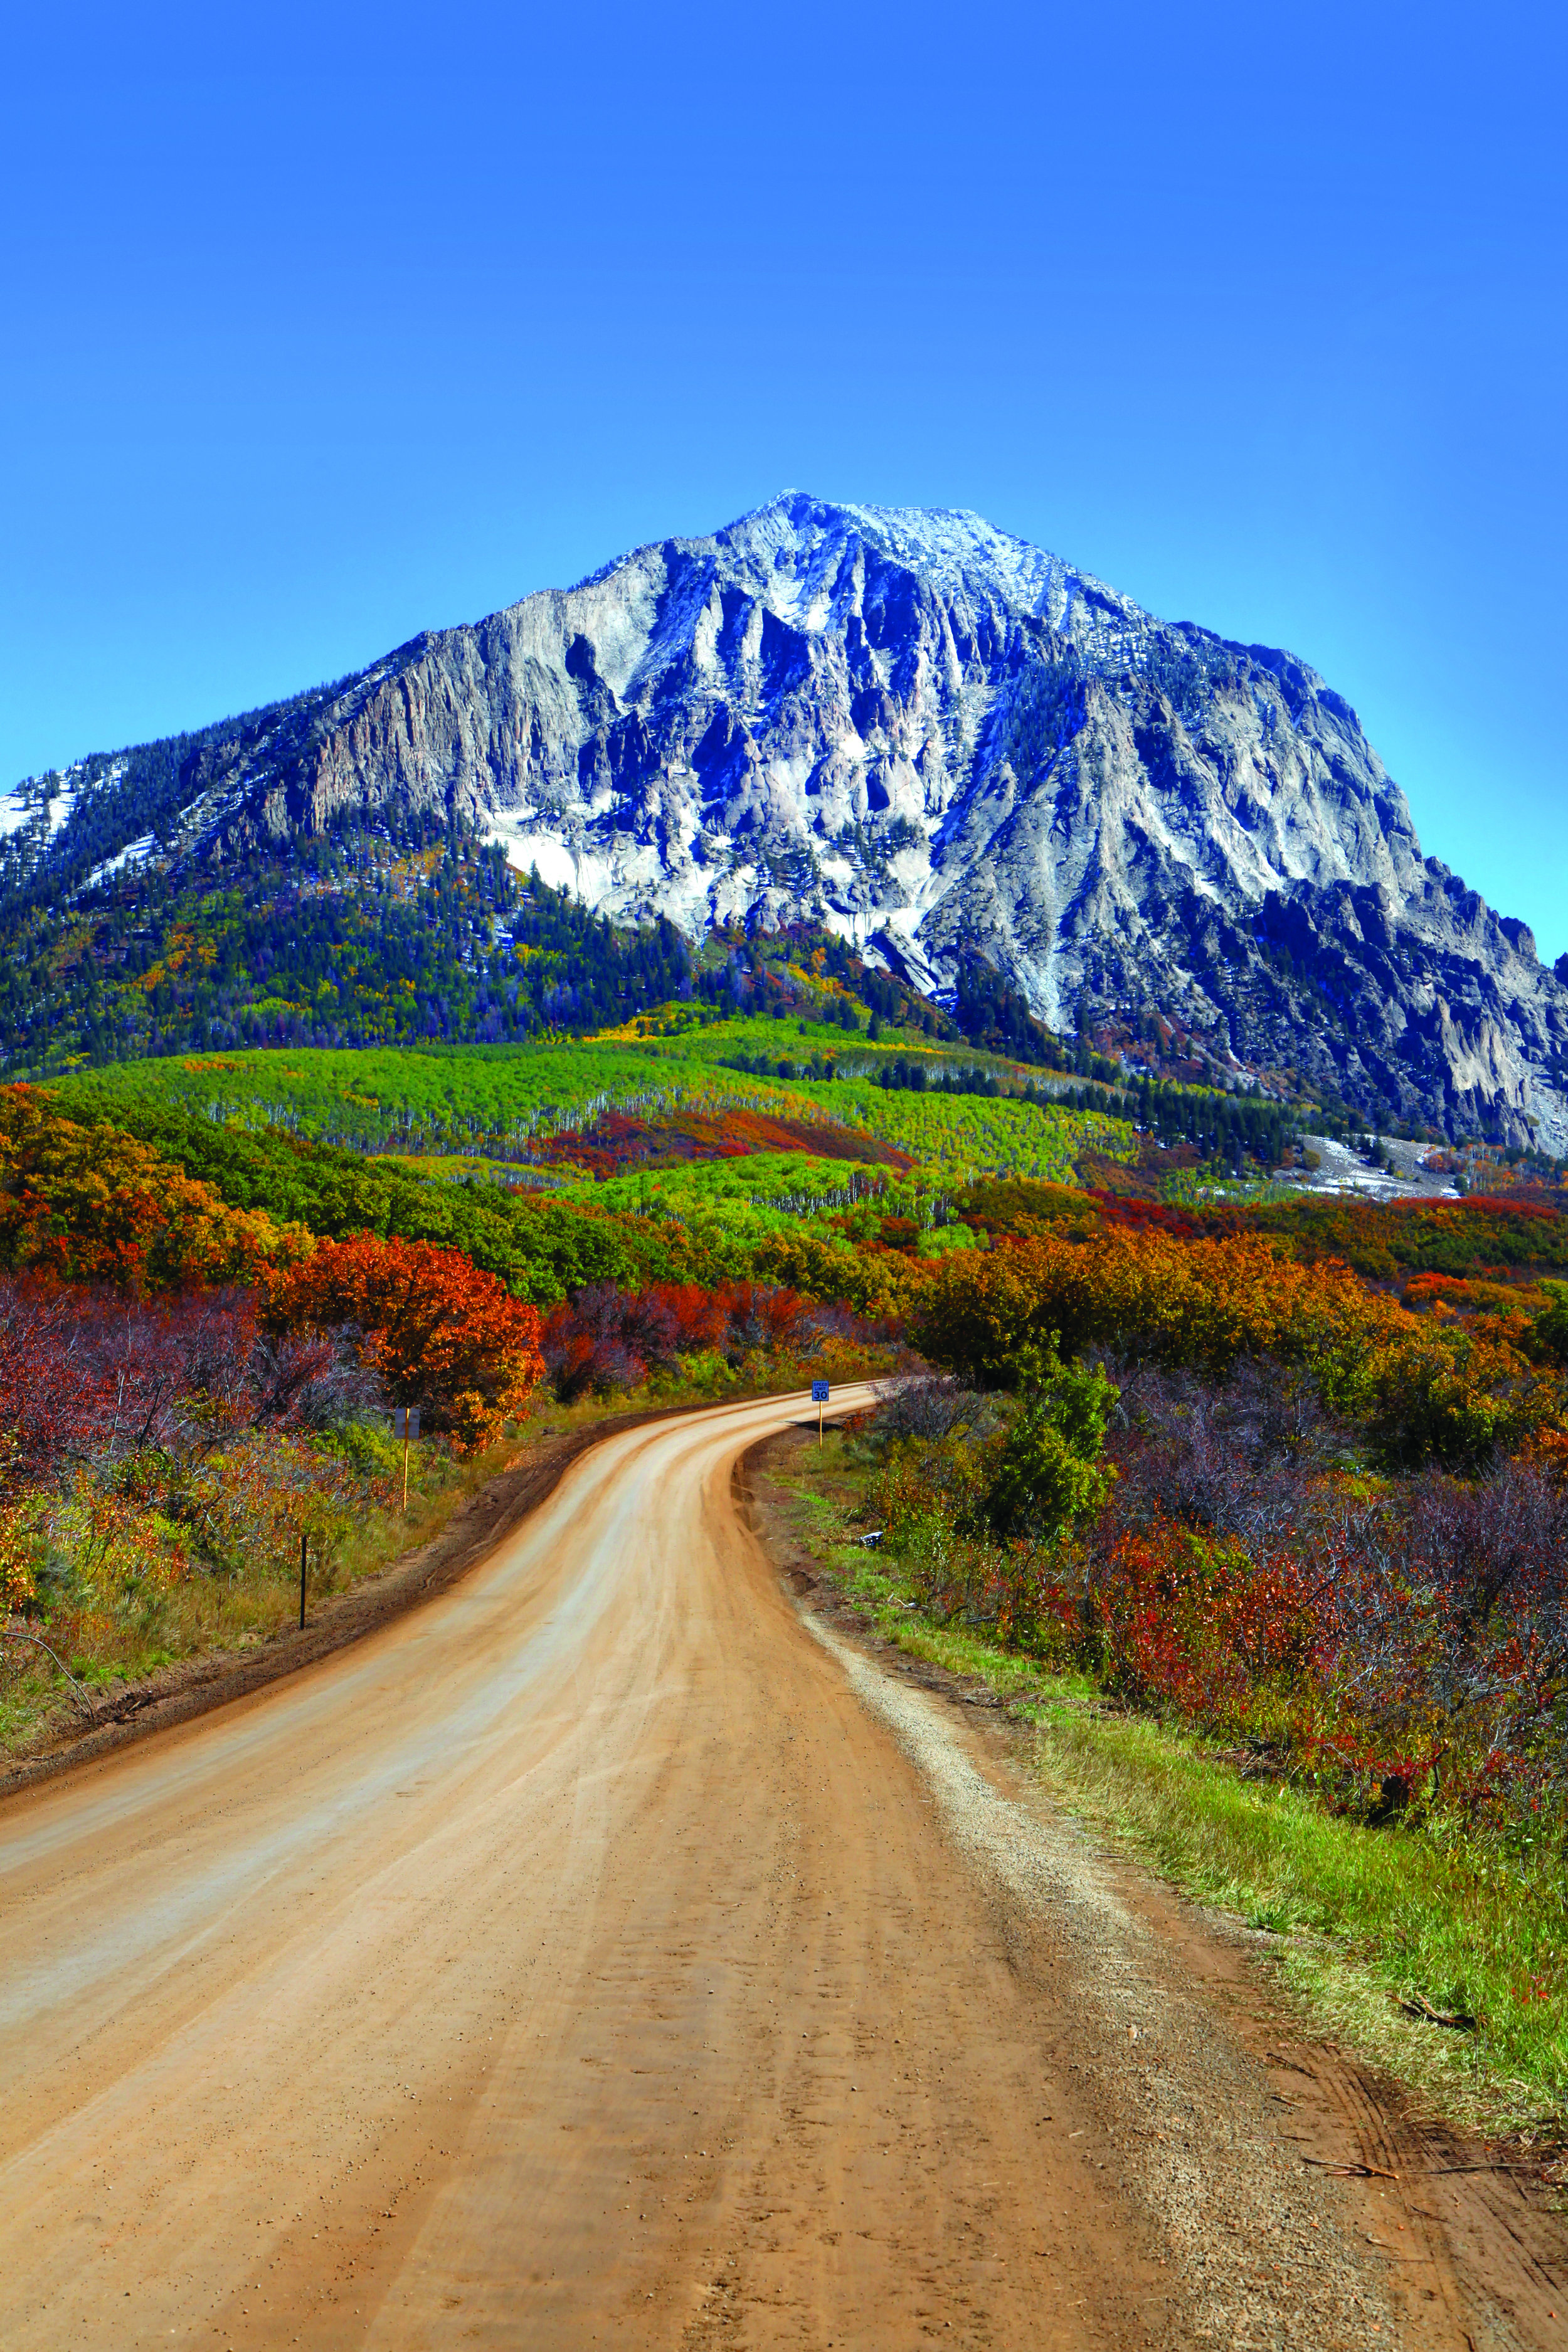 Colorado Highway 12 provides a scenic tour for viewing fall colors.  Photo: ©SNEHIT / AdobeStock.com